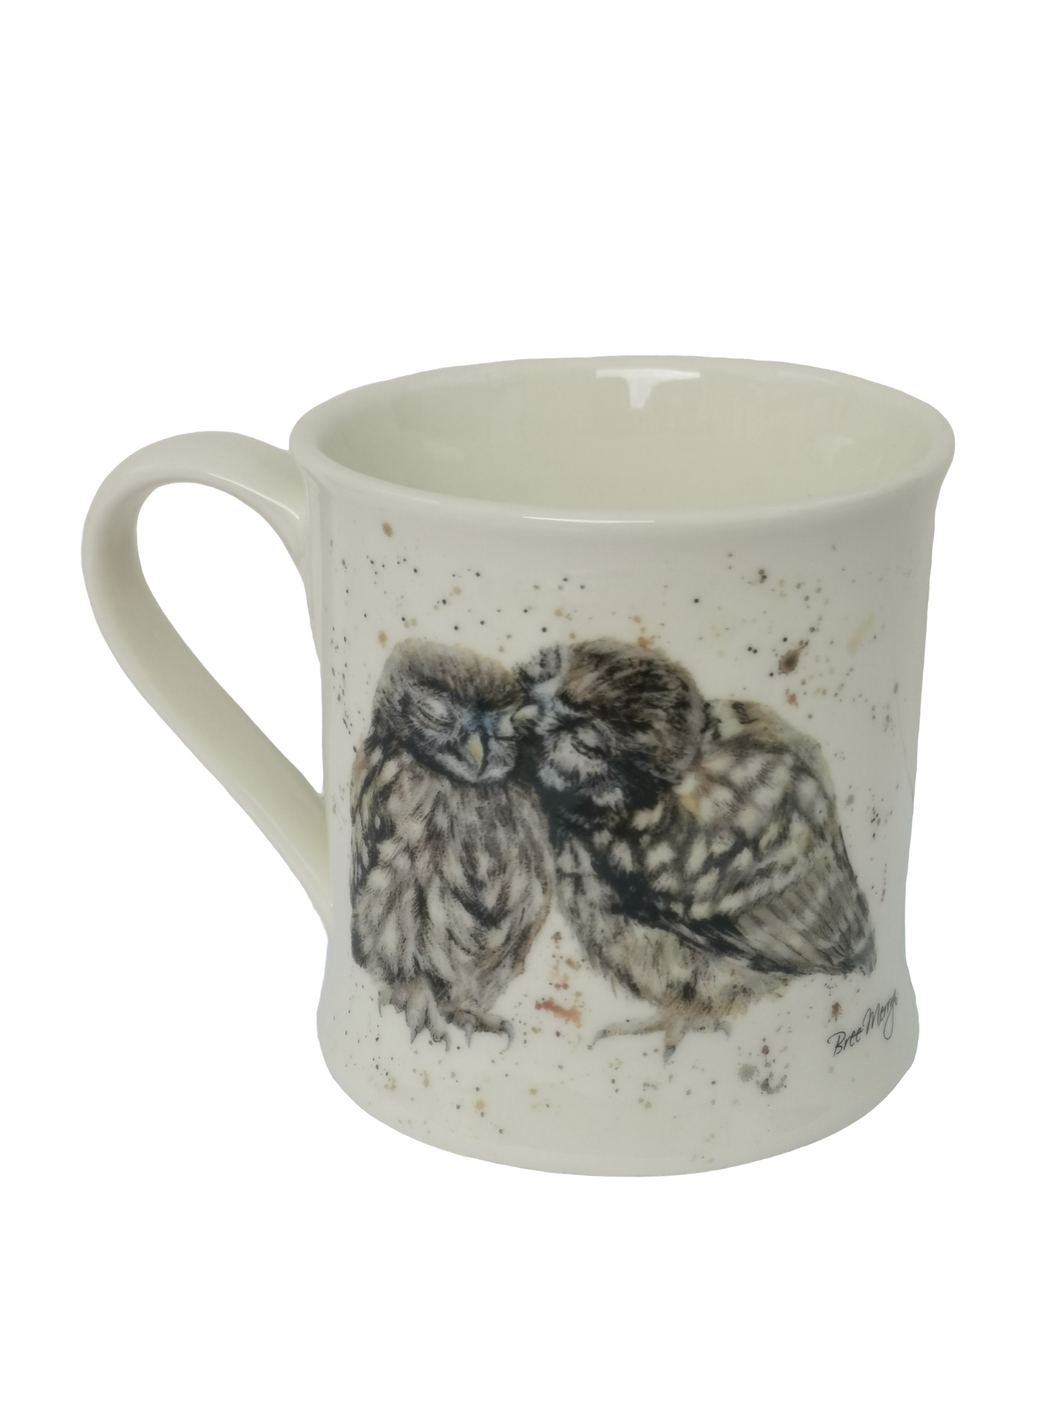 Bree Merryn Mug - Down on the Farm - Posh & Pecks Owls